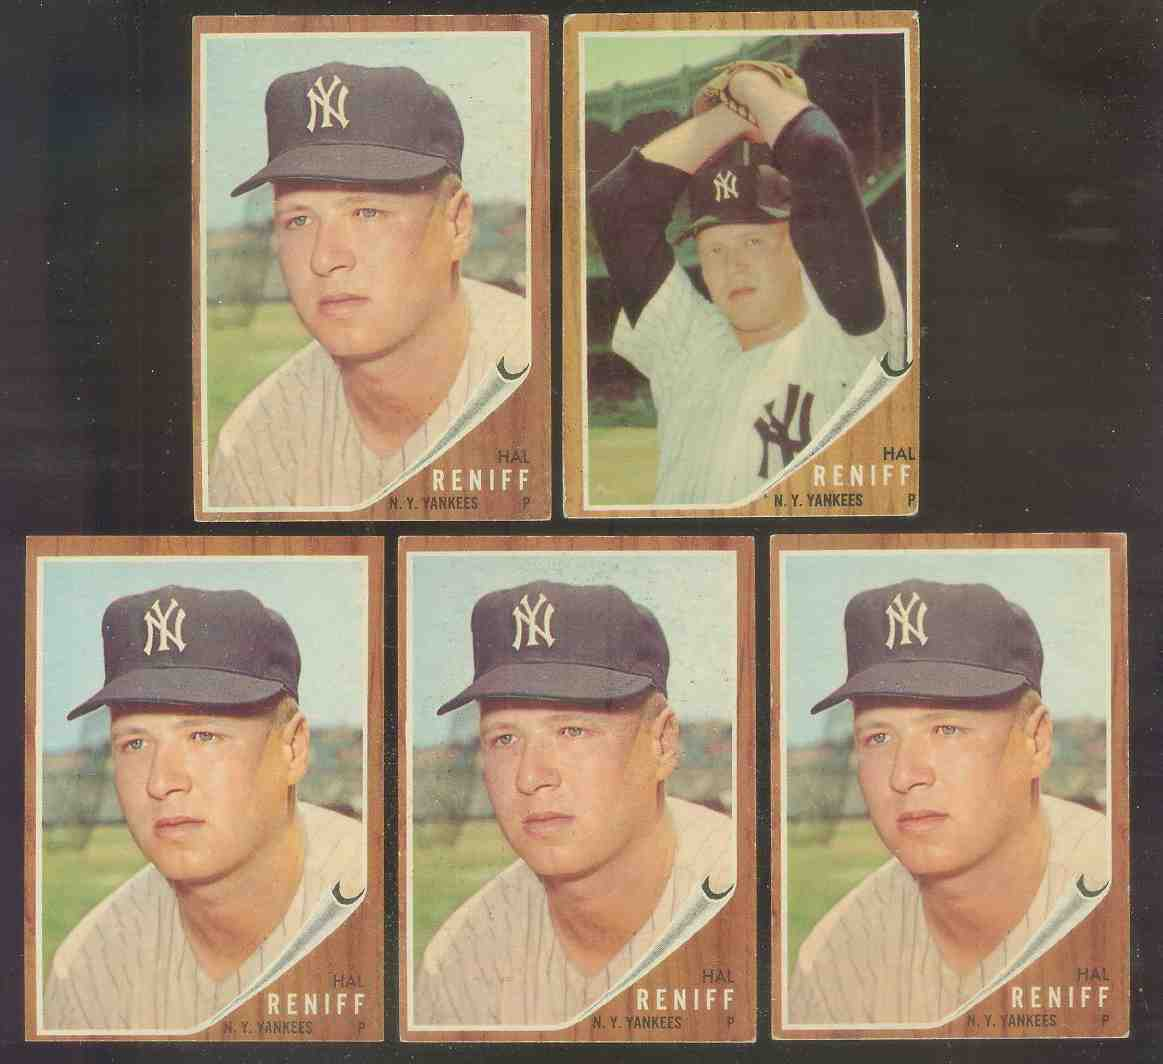 1962 Topps #139B Hal Reniff ROOKIE [VAR: Portrait) (Yankees) Baseball cards value